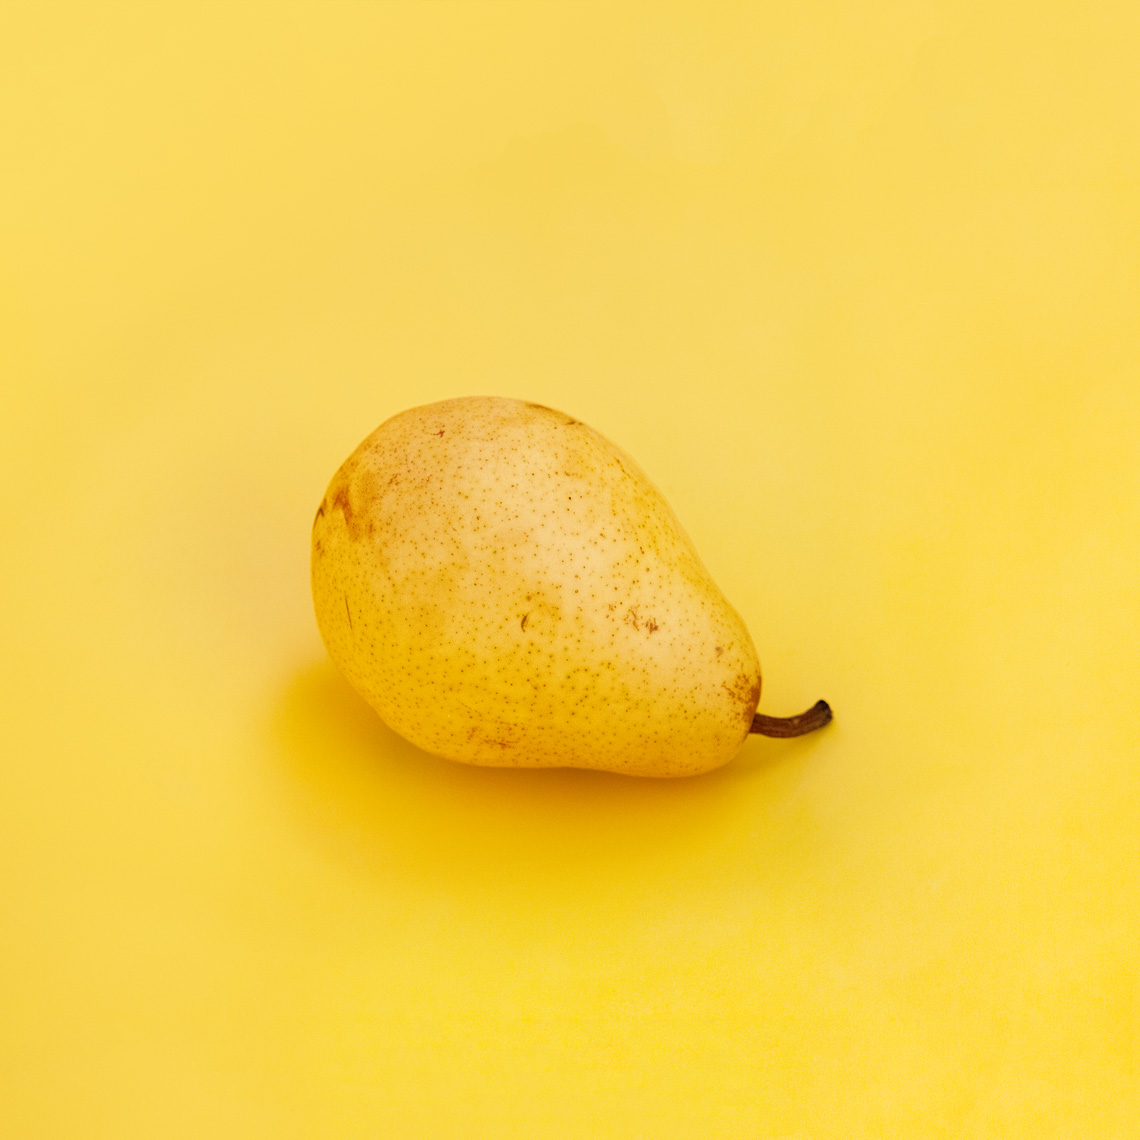 Fruit_yellow